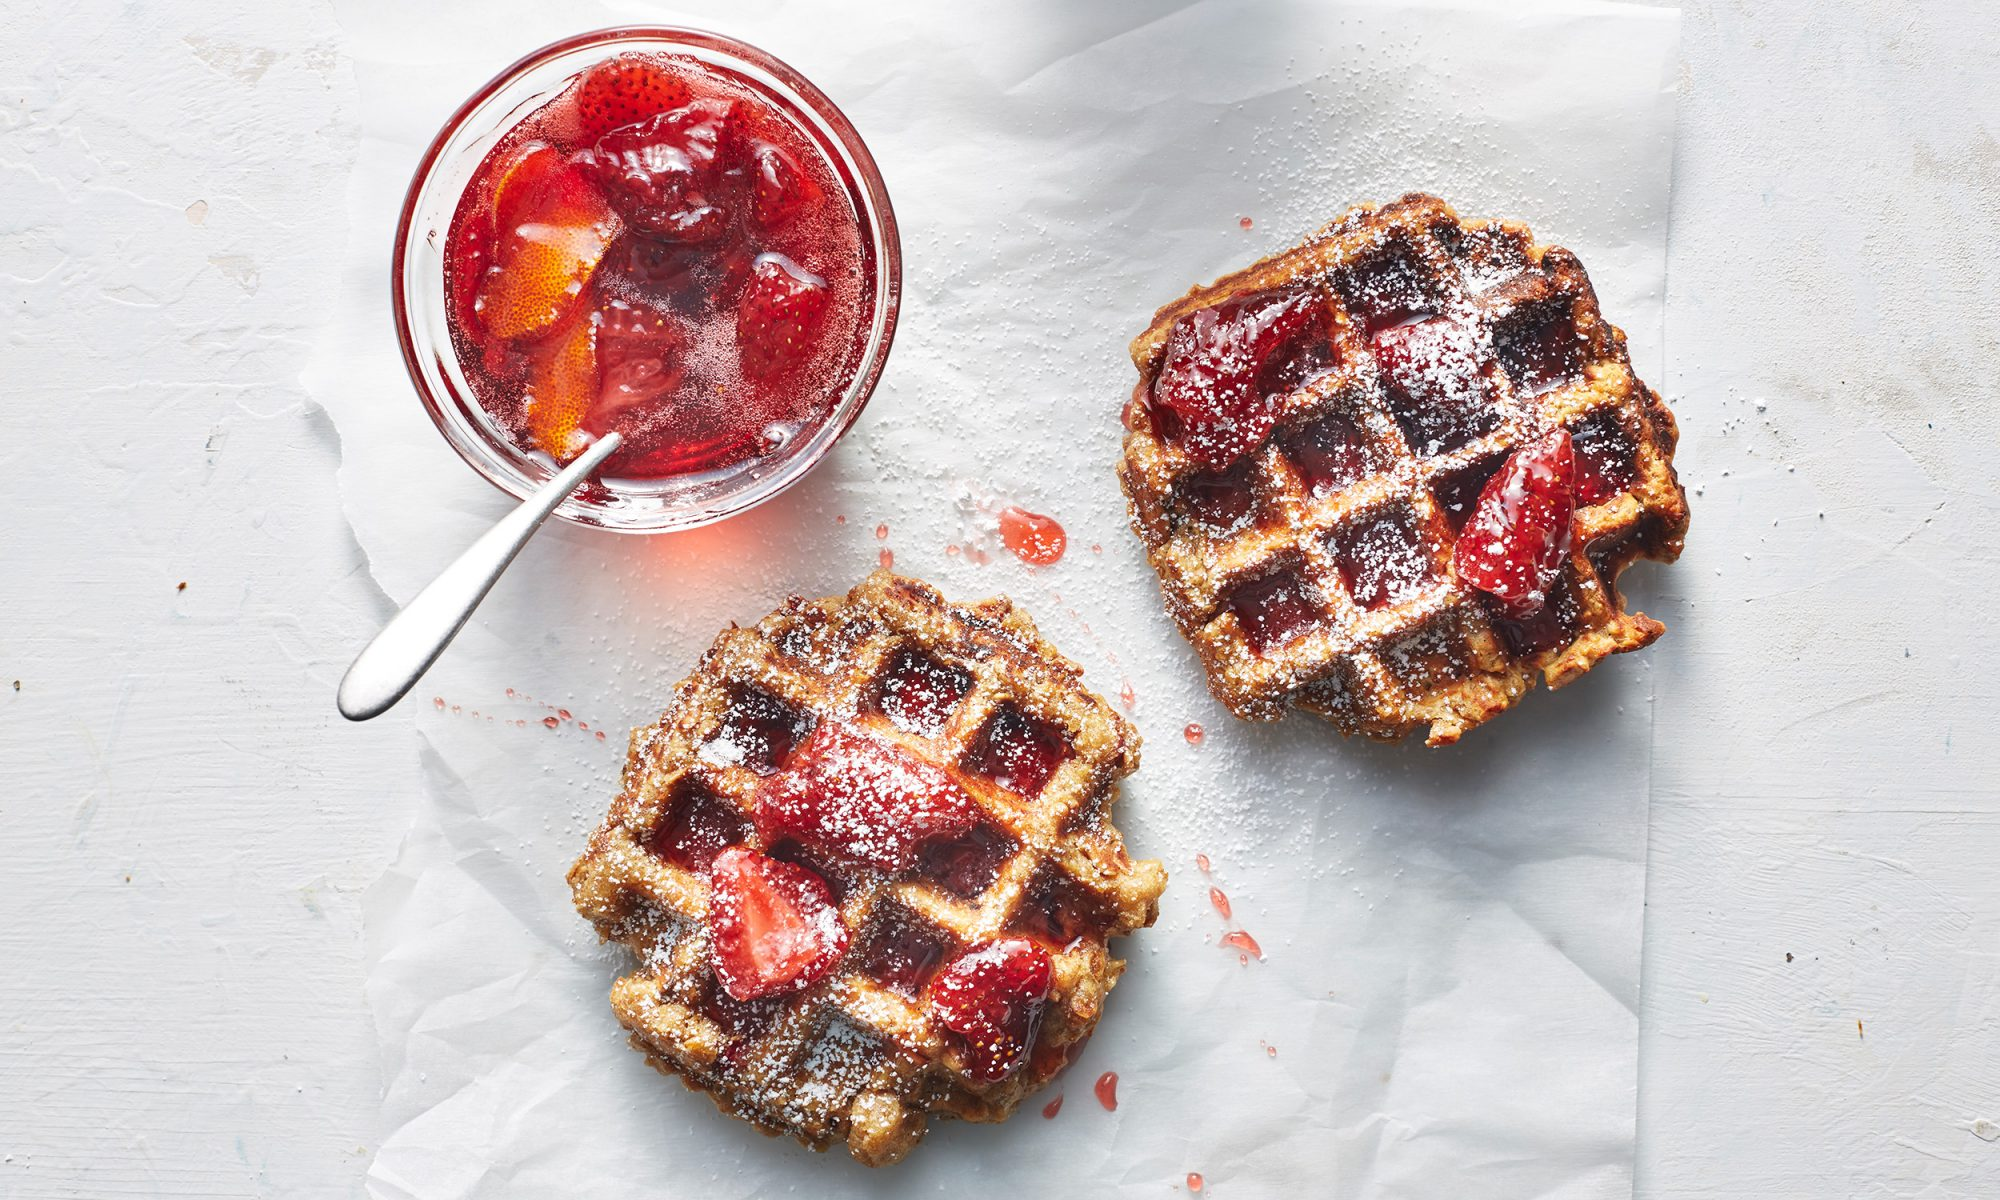 How to Make Granola Waffles with Strawberry Compote